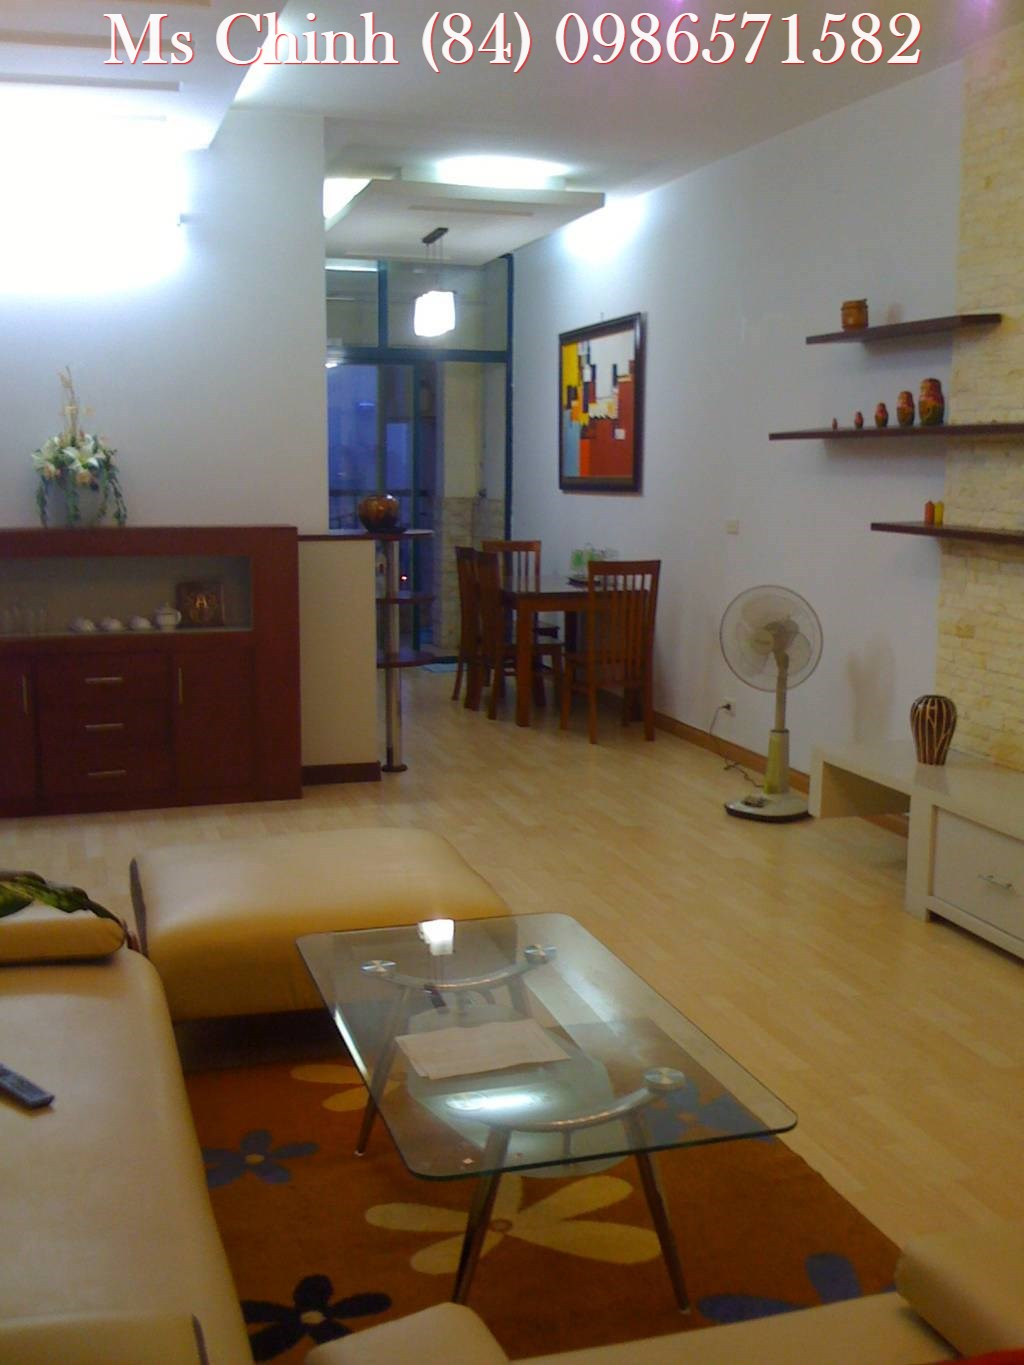 Cheap 2 Bedroom House For Rent: Houses, Apartments For Rent In Hanoi: Cheap 2 Bedroom